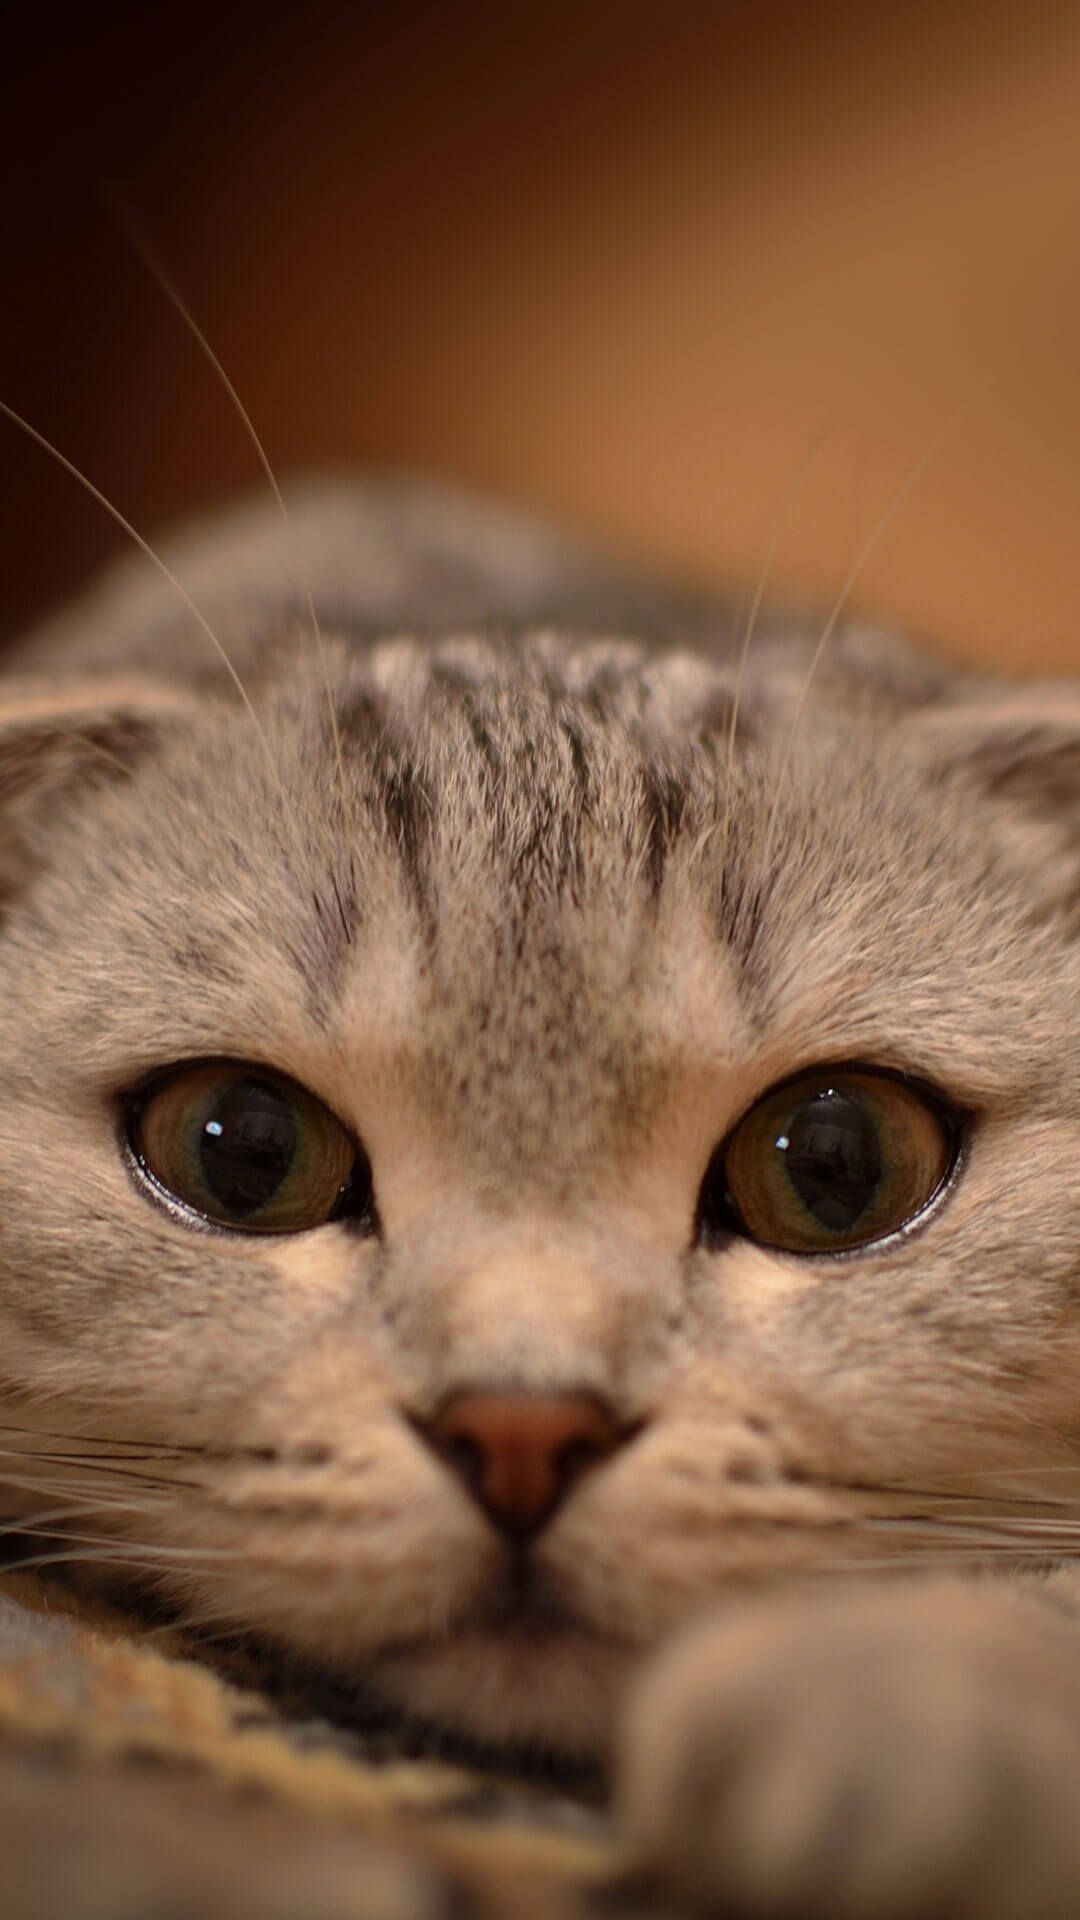 Res: 1080x1920, Cute Cat Wallpaper For iPhone 6 Plus HD